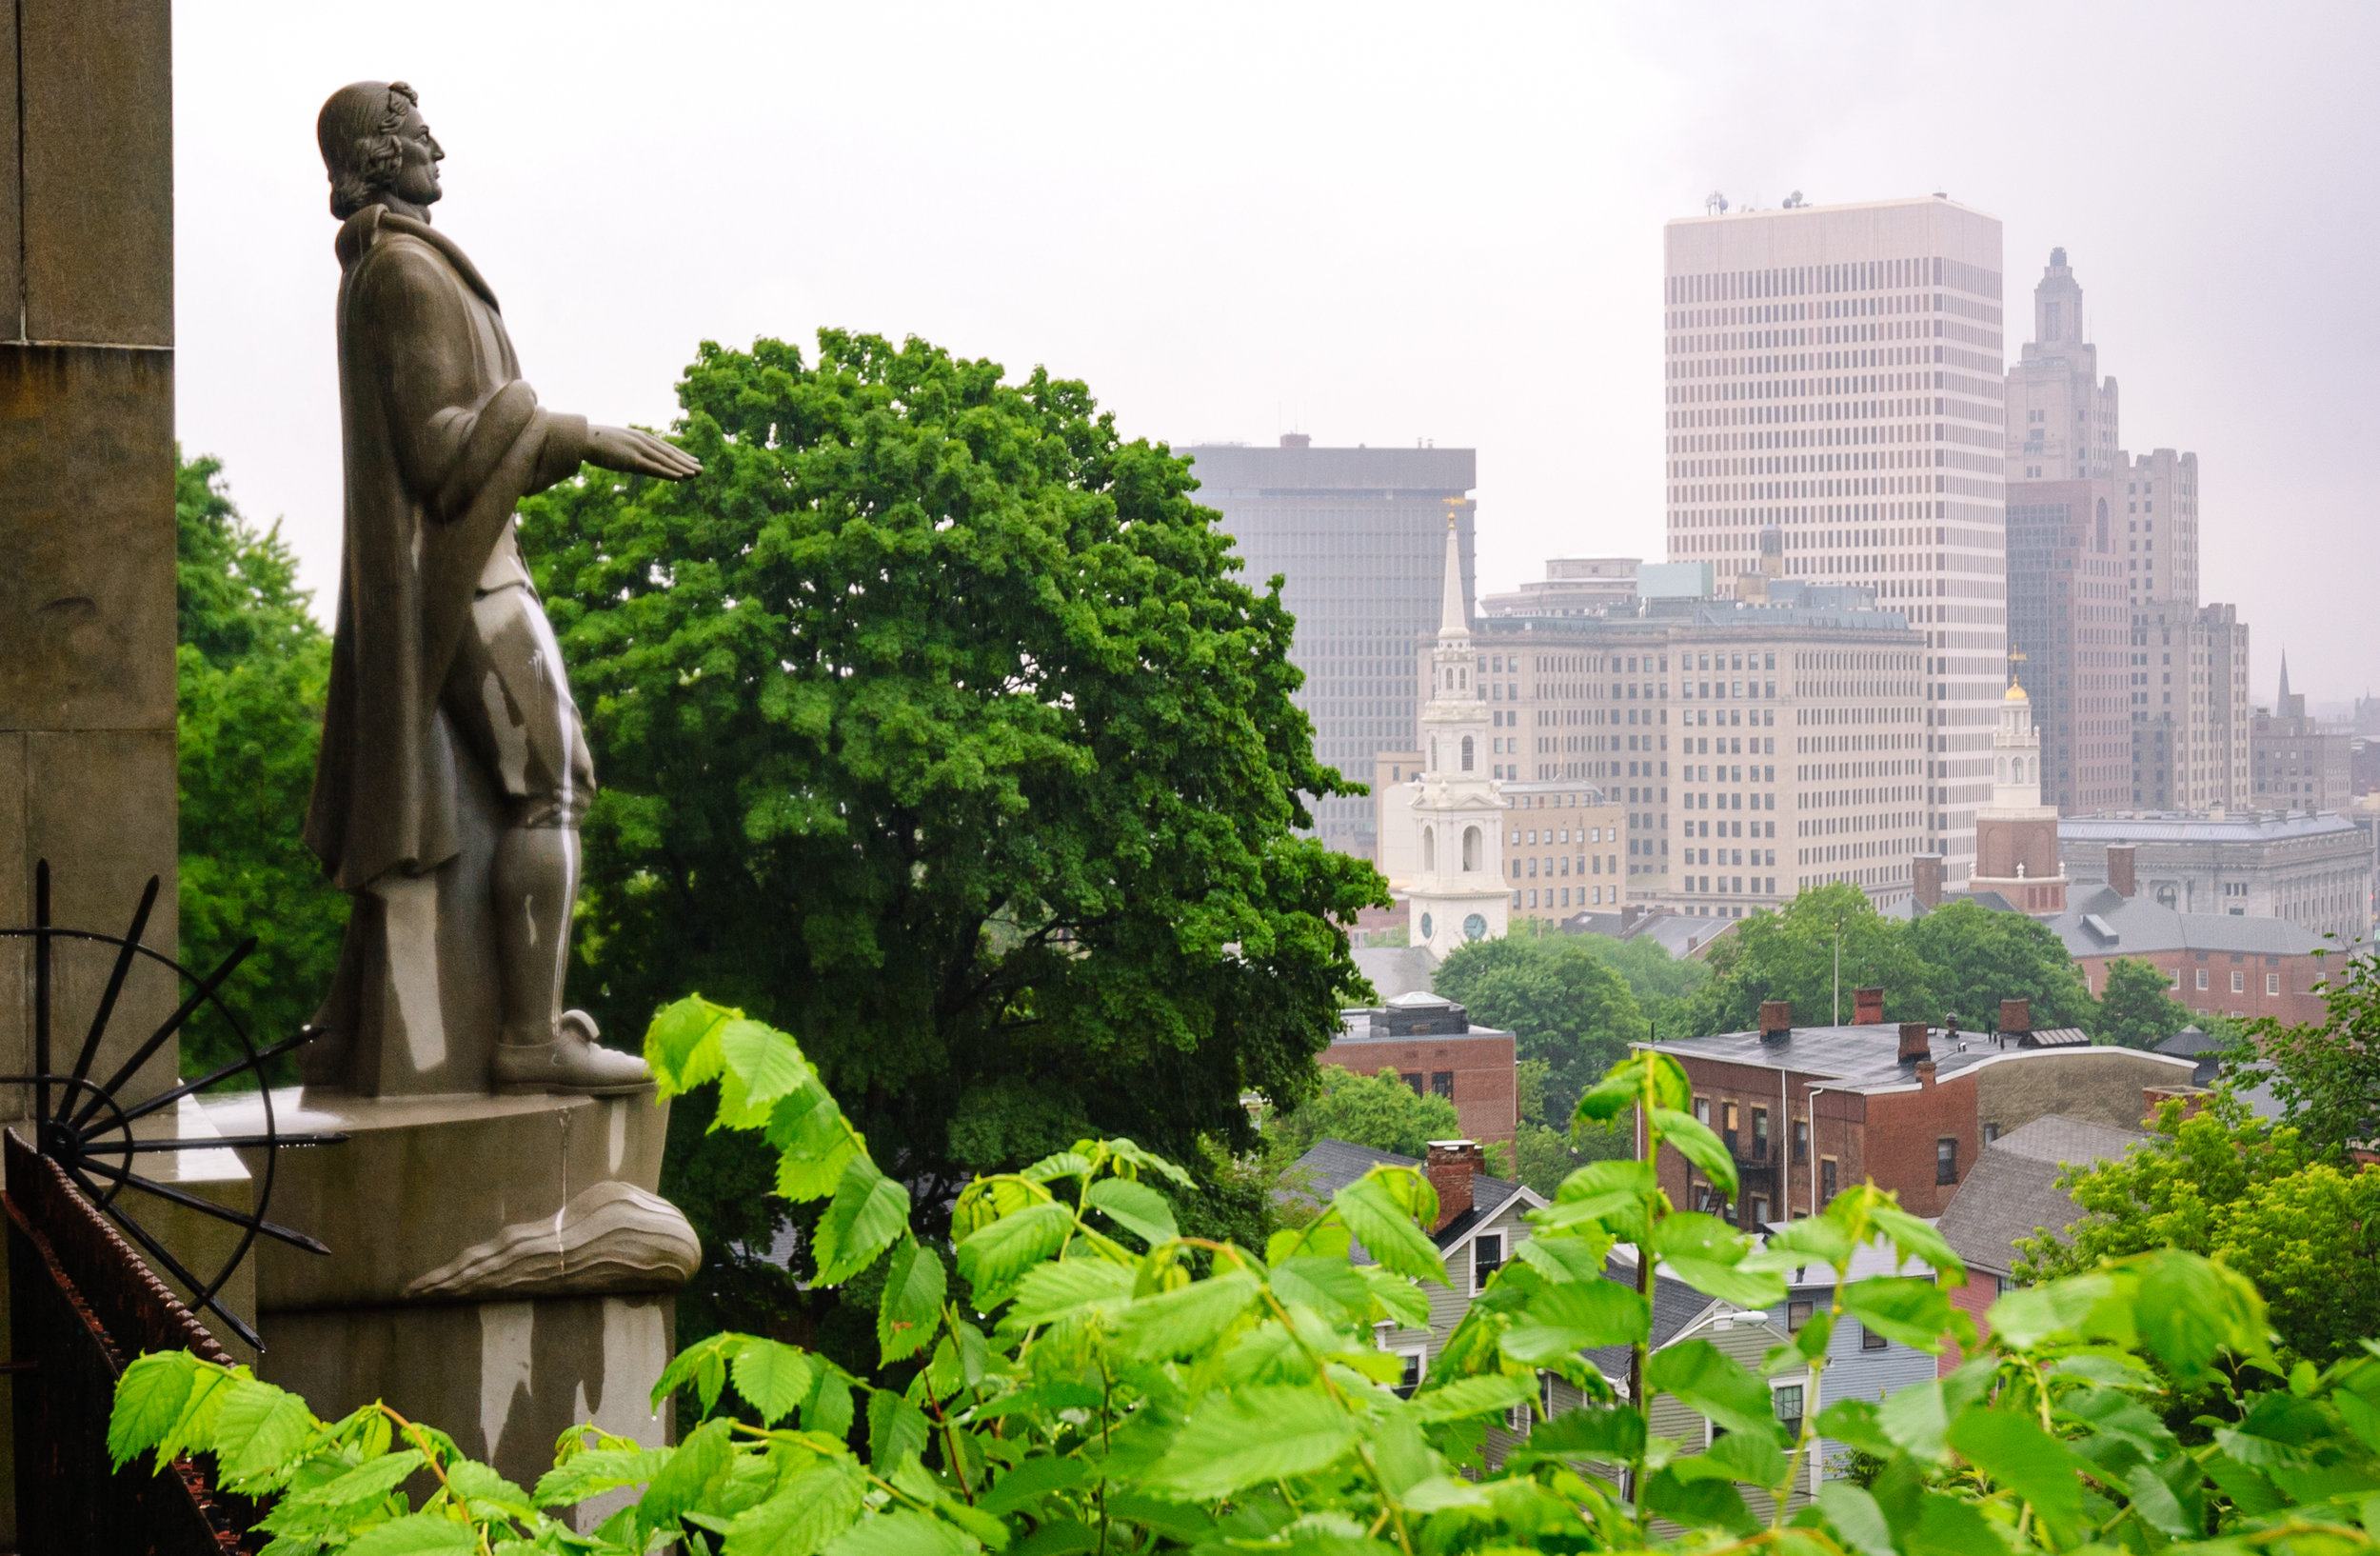 Roger Williams Statue At Prospect Terrace Park Where The Tour Kicks Off, Photo by zrfphoto/iStock/Getty Images